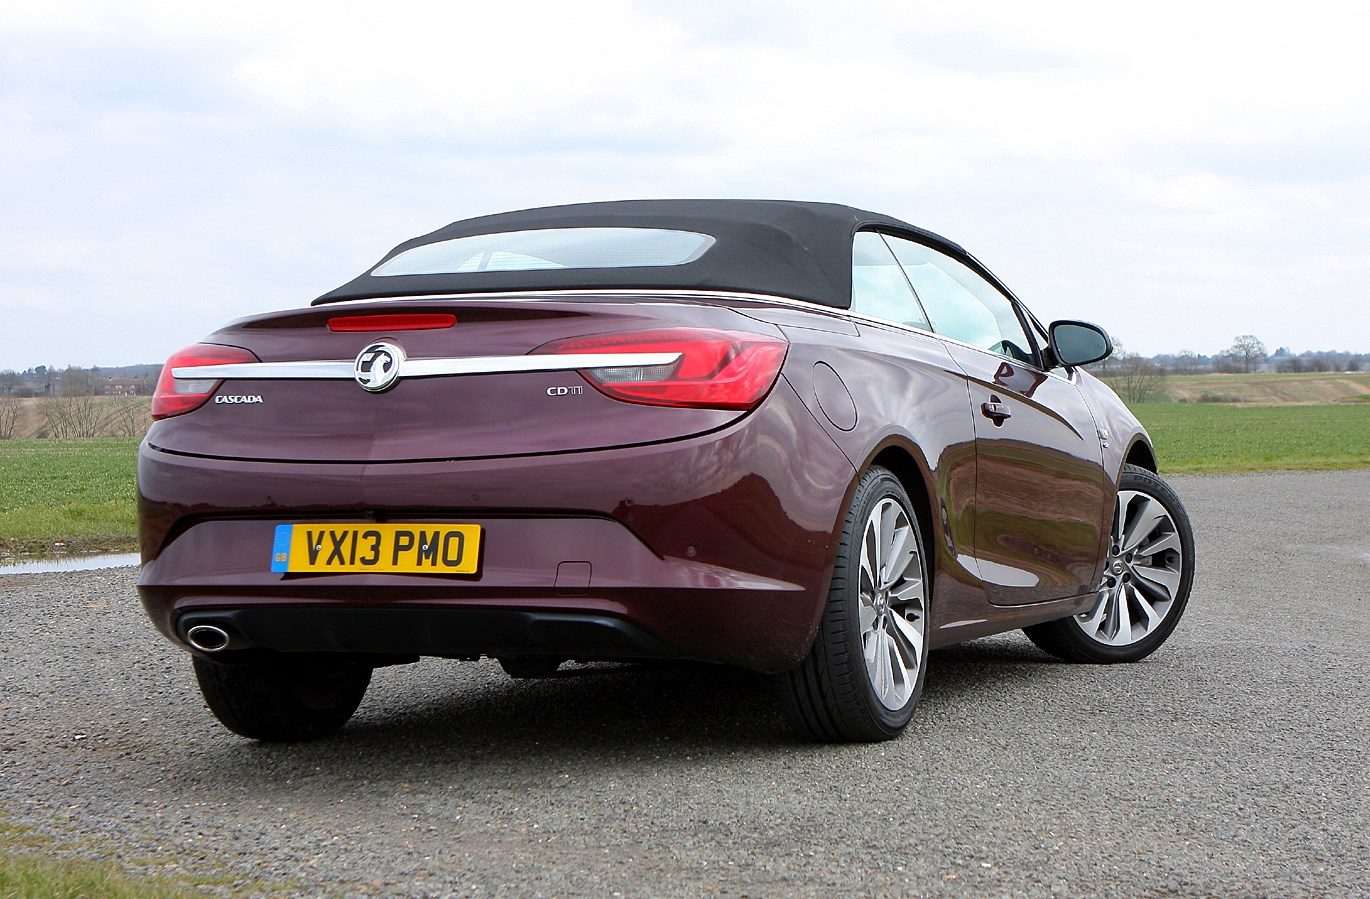 Vauxhall cascada convertible 2013 photos parkers for Cascada exterior